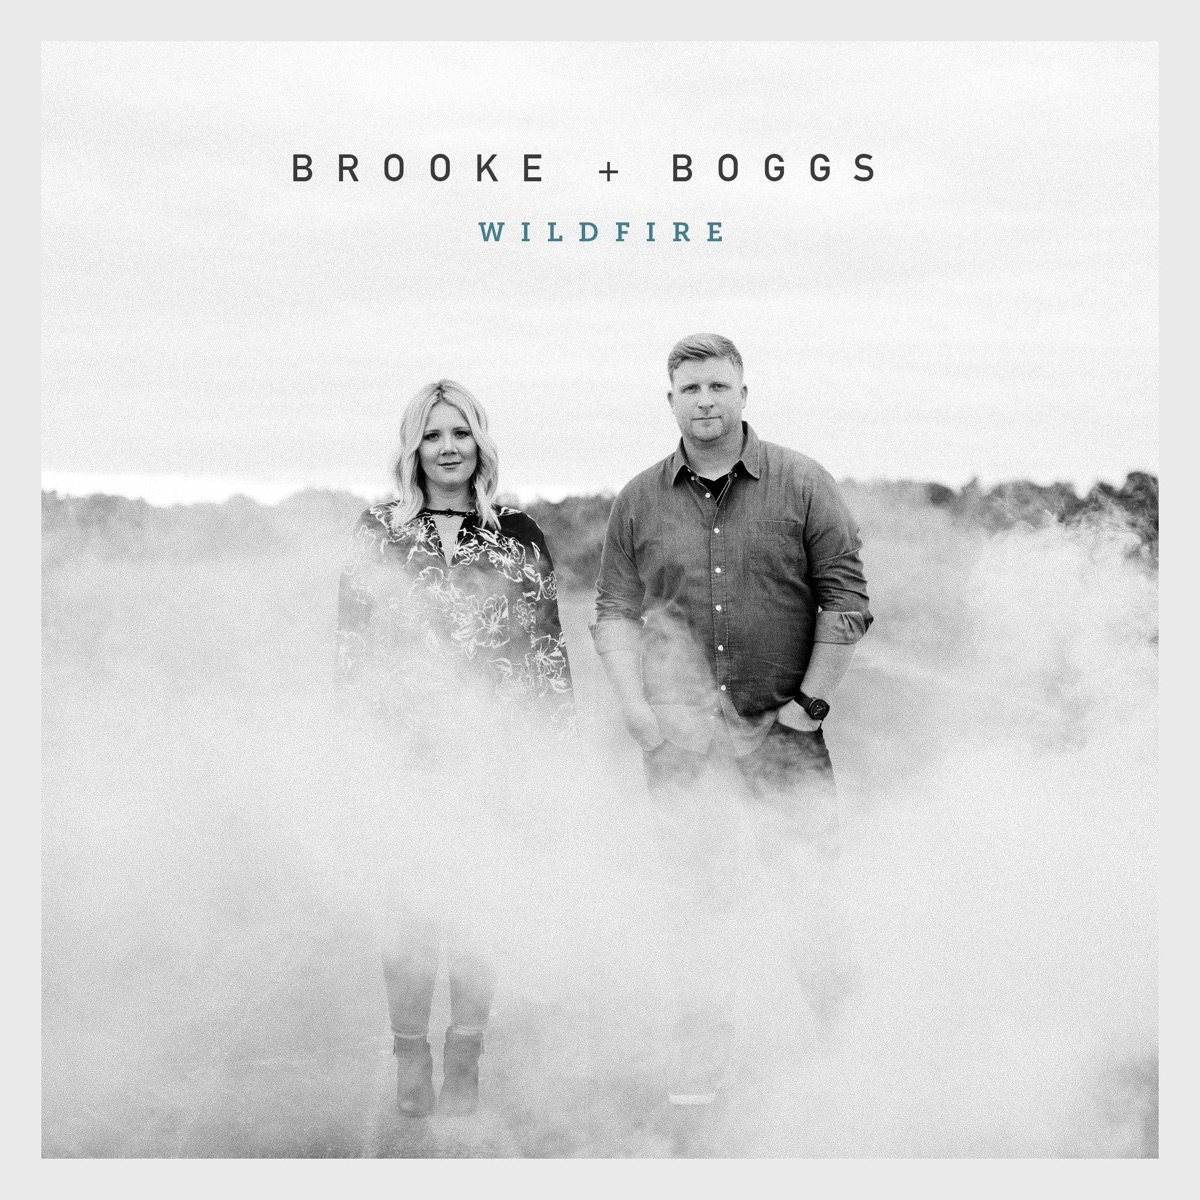 Wildfire - EP Brooke  Boggs CD cover